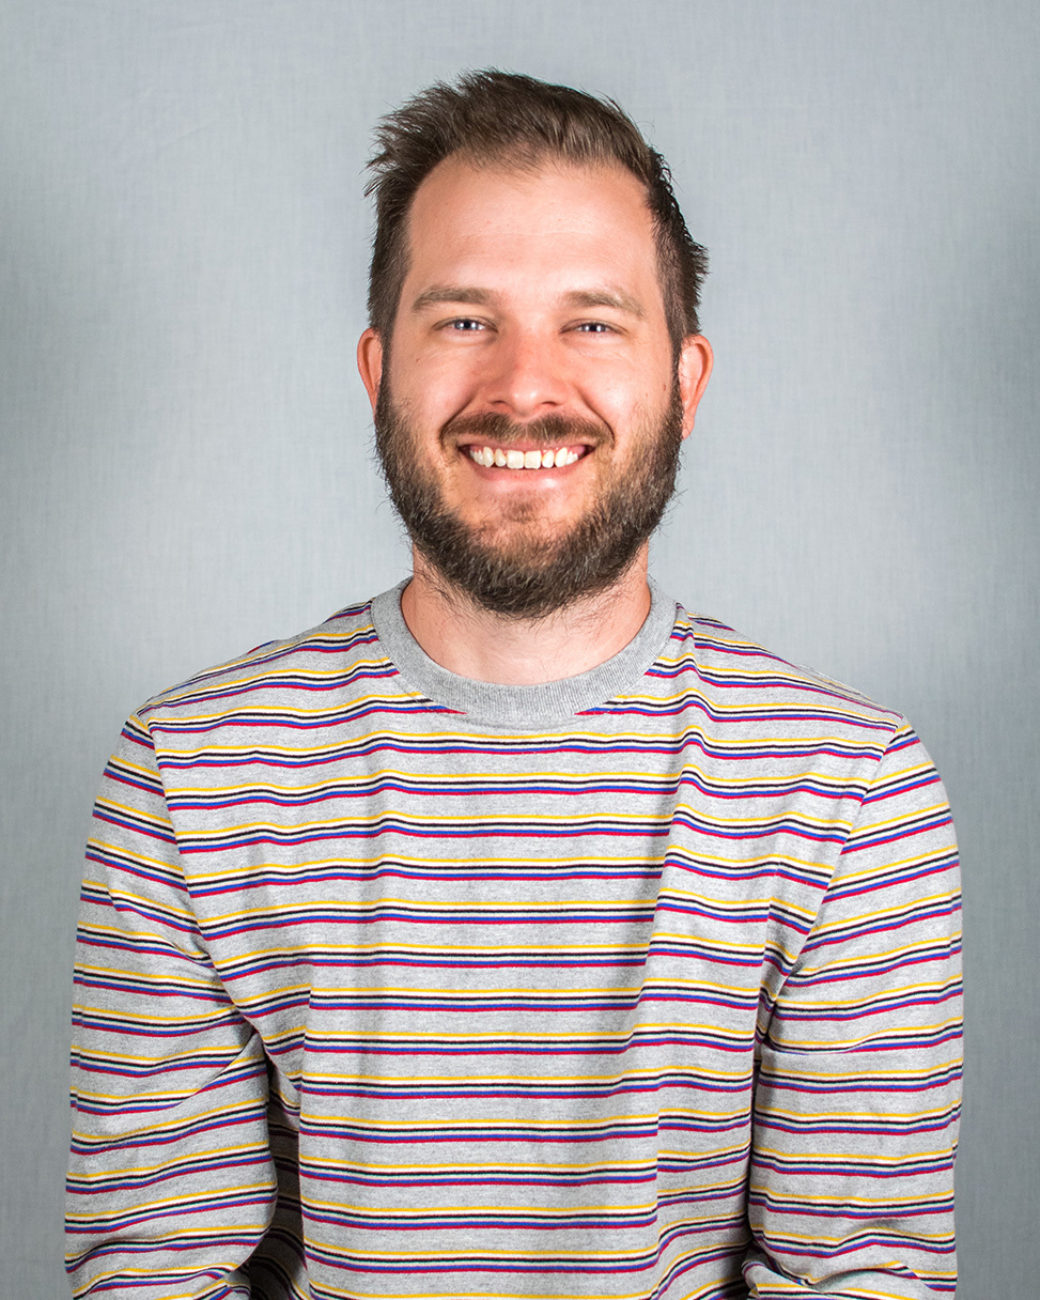 A headshot of adult person with a beard wearing a striped shirt